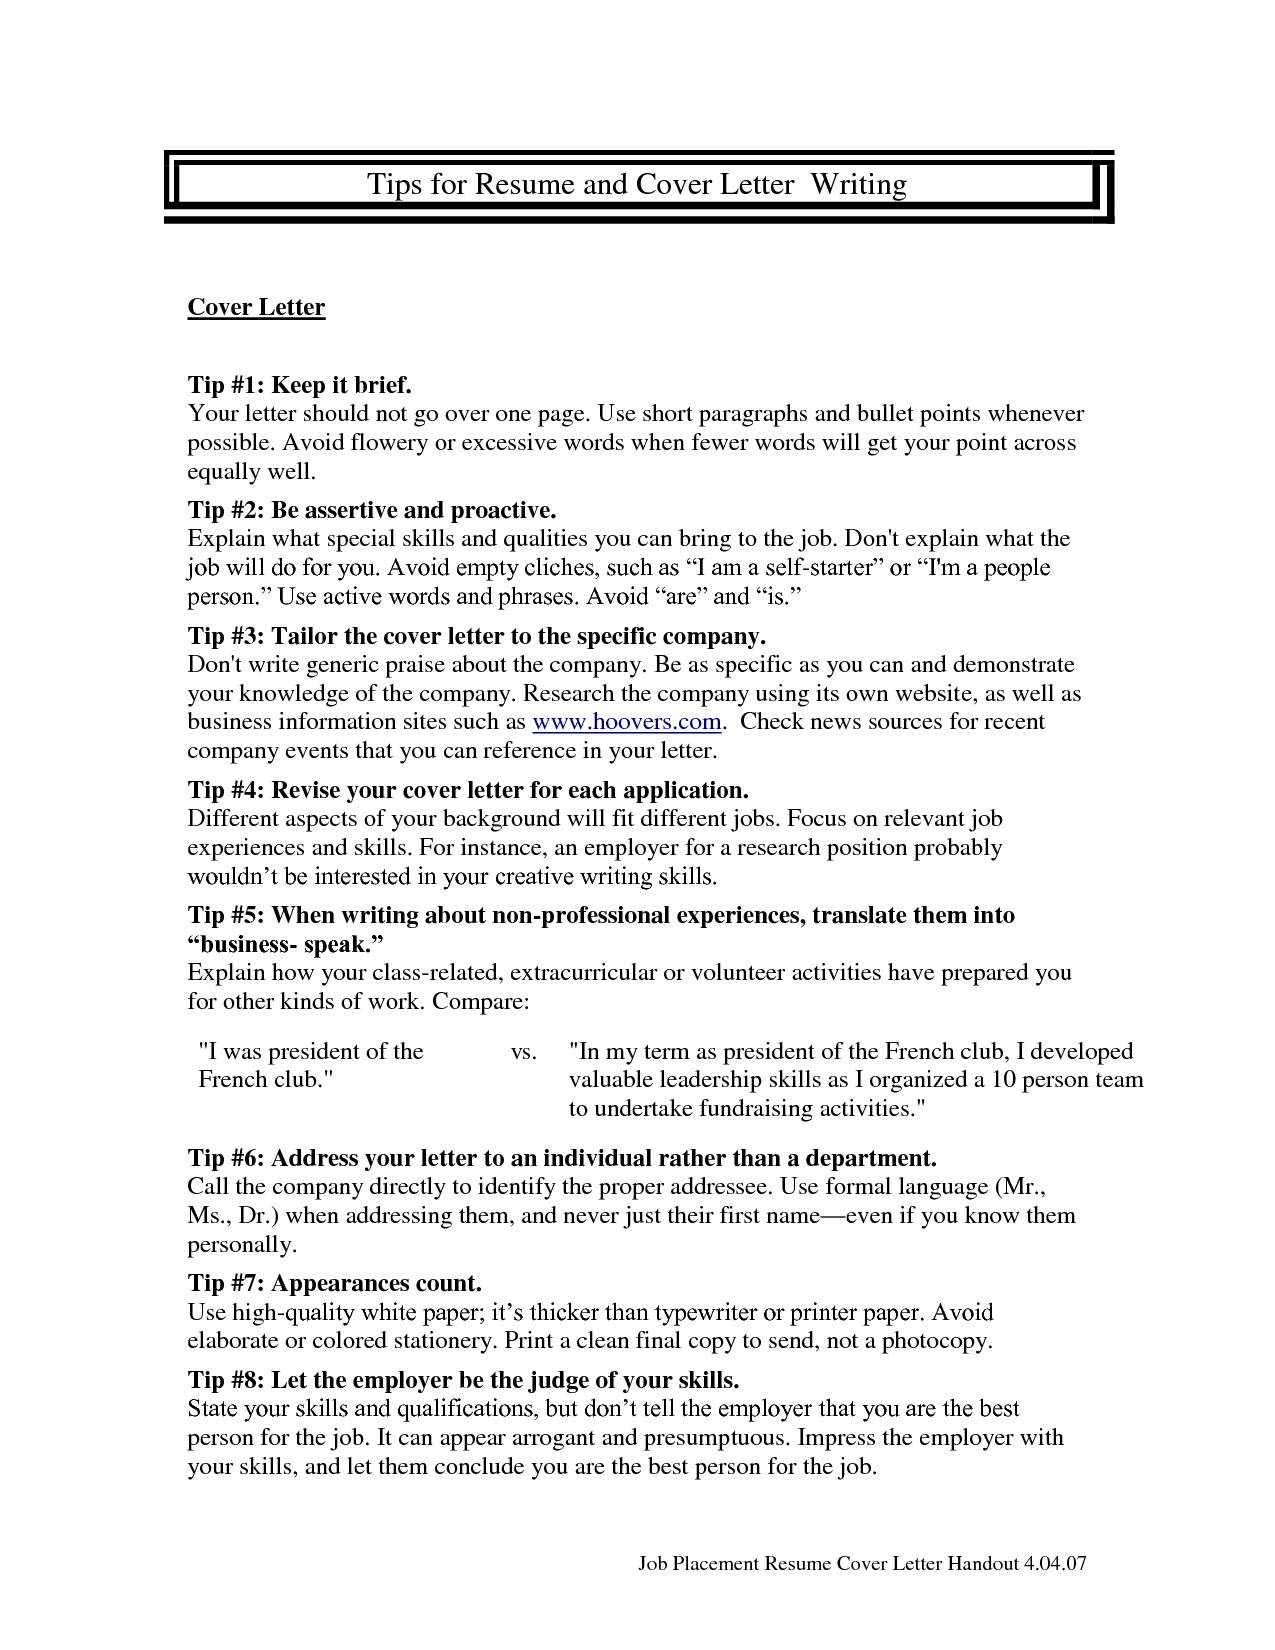 How To Make A Resume And Cover Letter Bullet Point Resume Template  Resume Cover Letter  Download Now